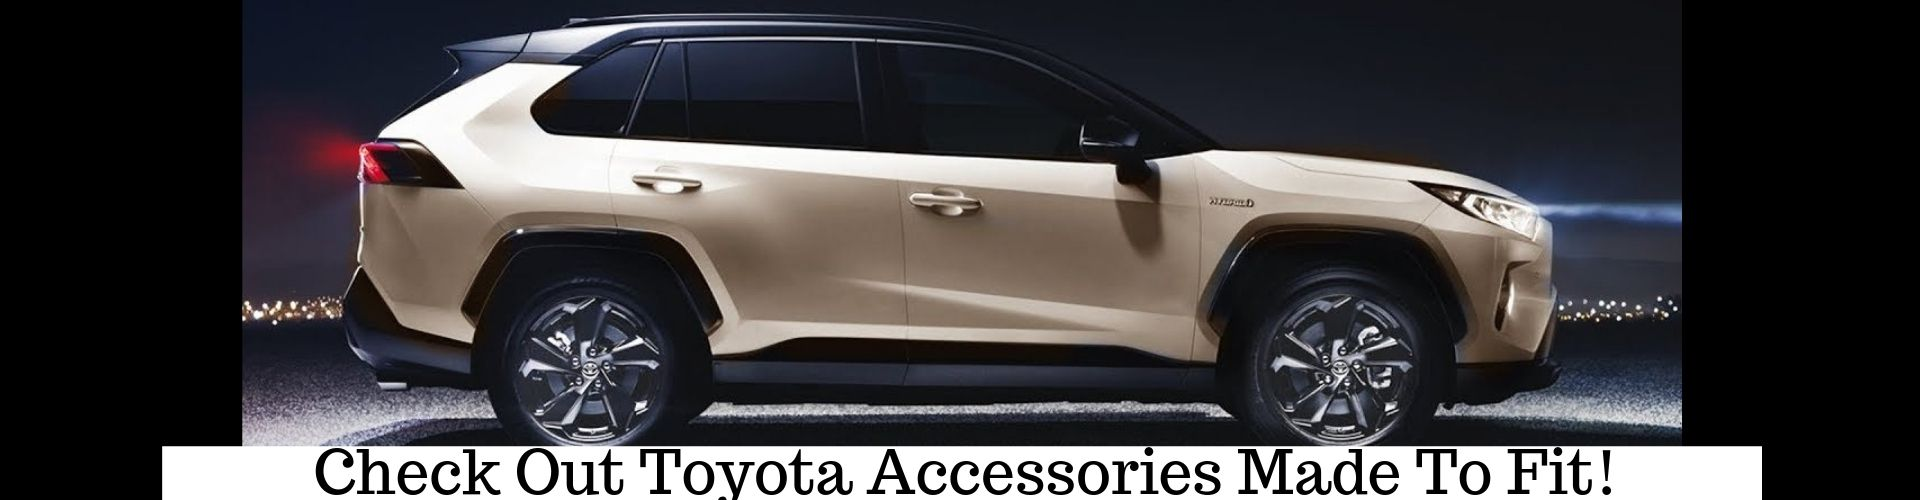 Shop Toyota Accessories